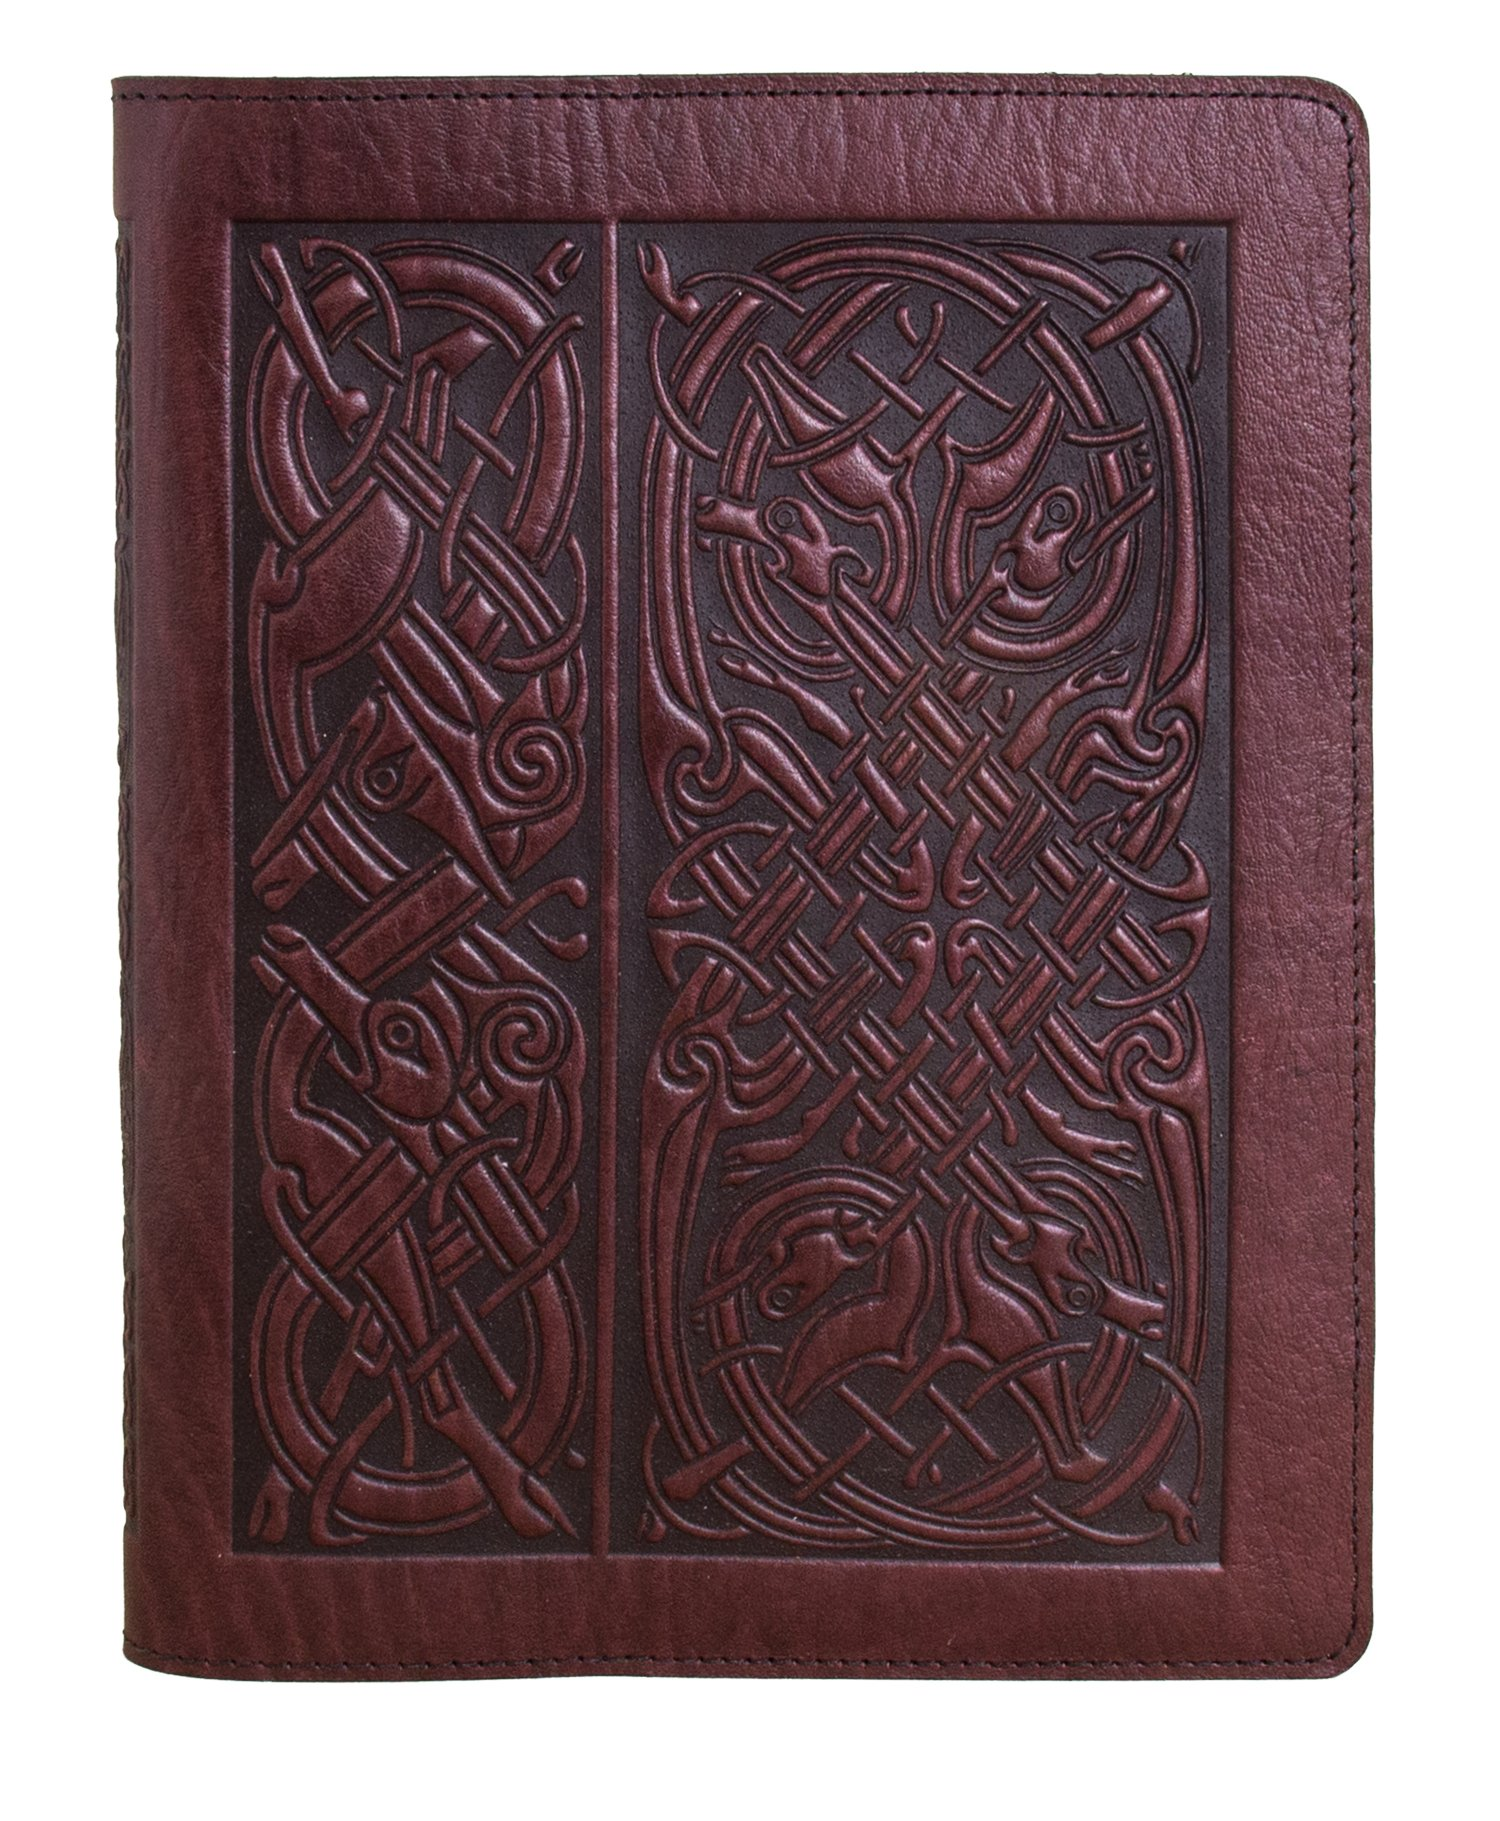 Genuine Leather Composition Notebook Cover with Insert, 8.25x10.25 Inches, Celtic Hounds, Wine Color, Made in the USA by Oberon Design by Oberon Design